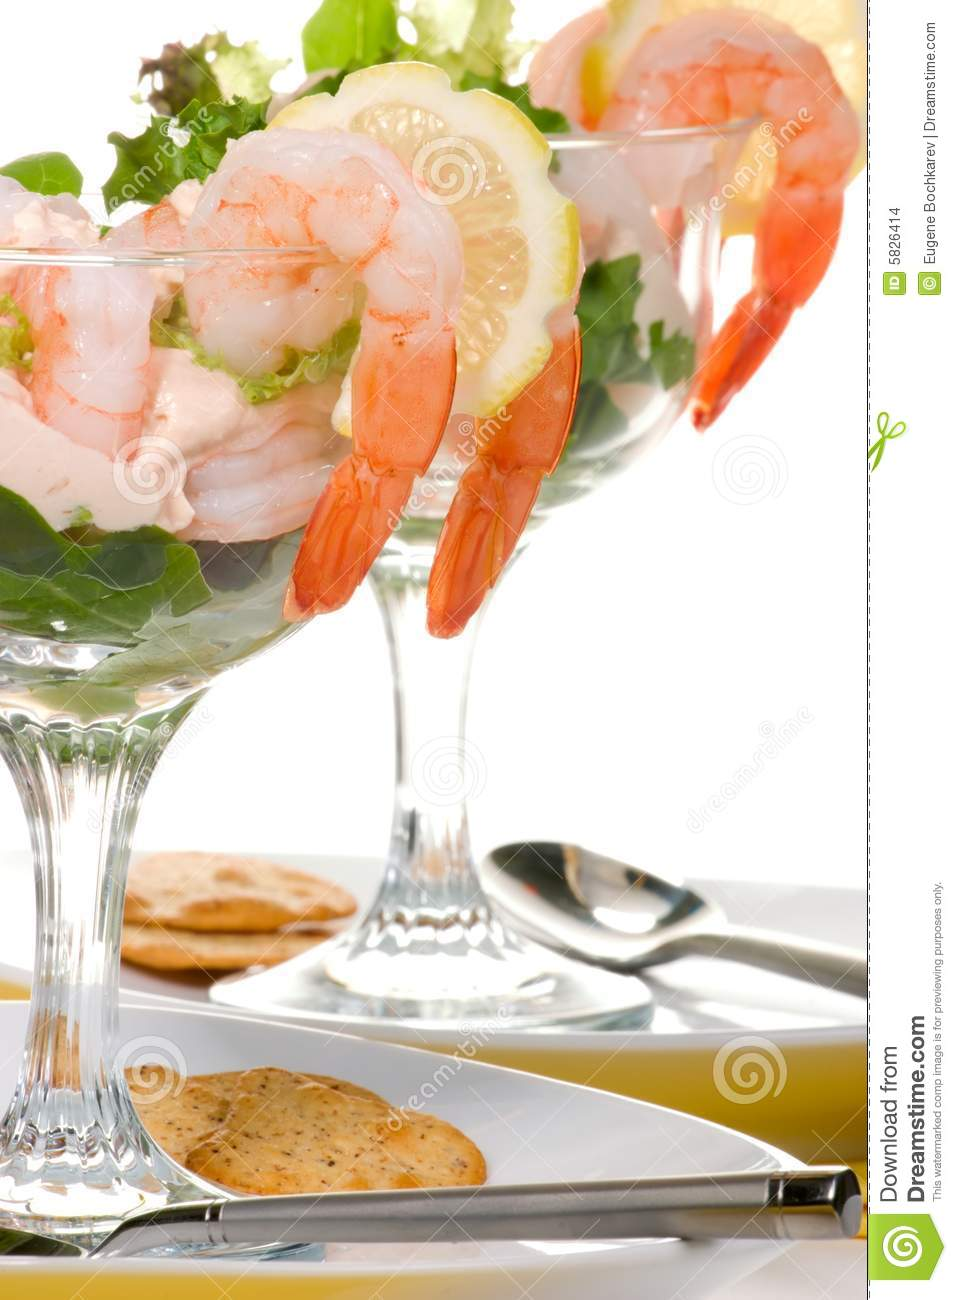 Cocktail de crevette images stock image 5826414 for Cocktail de crevettes